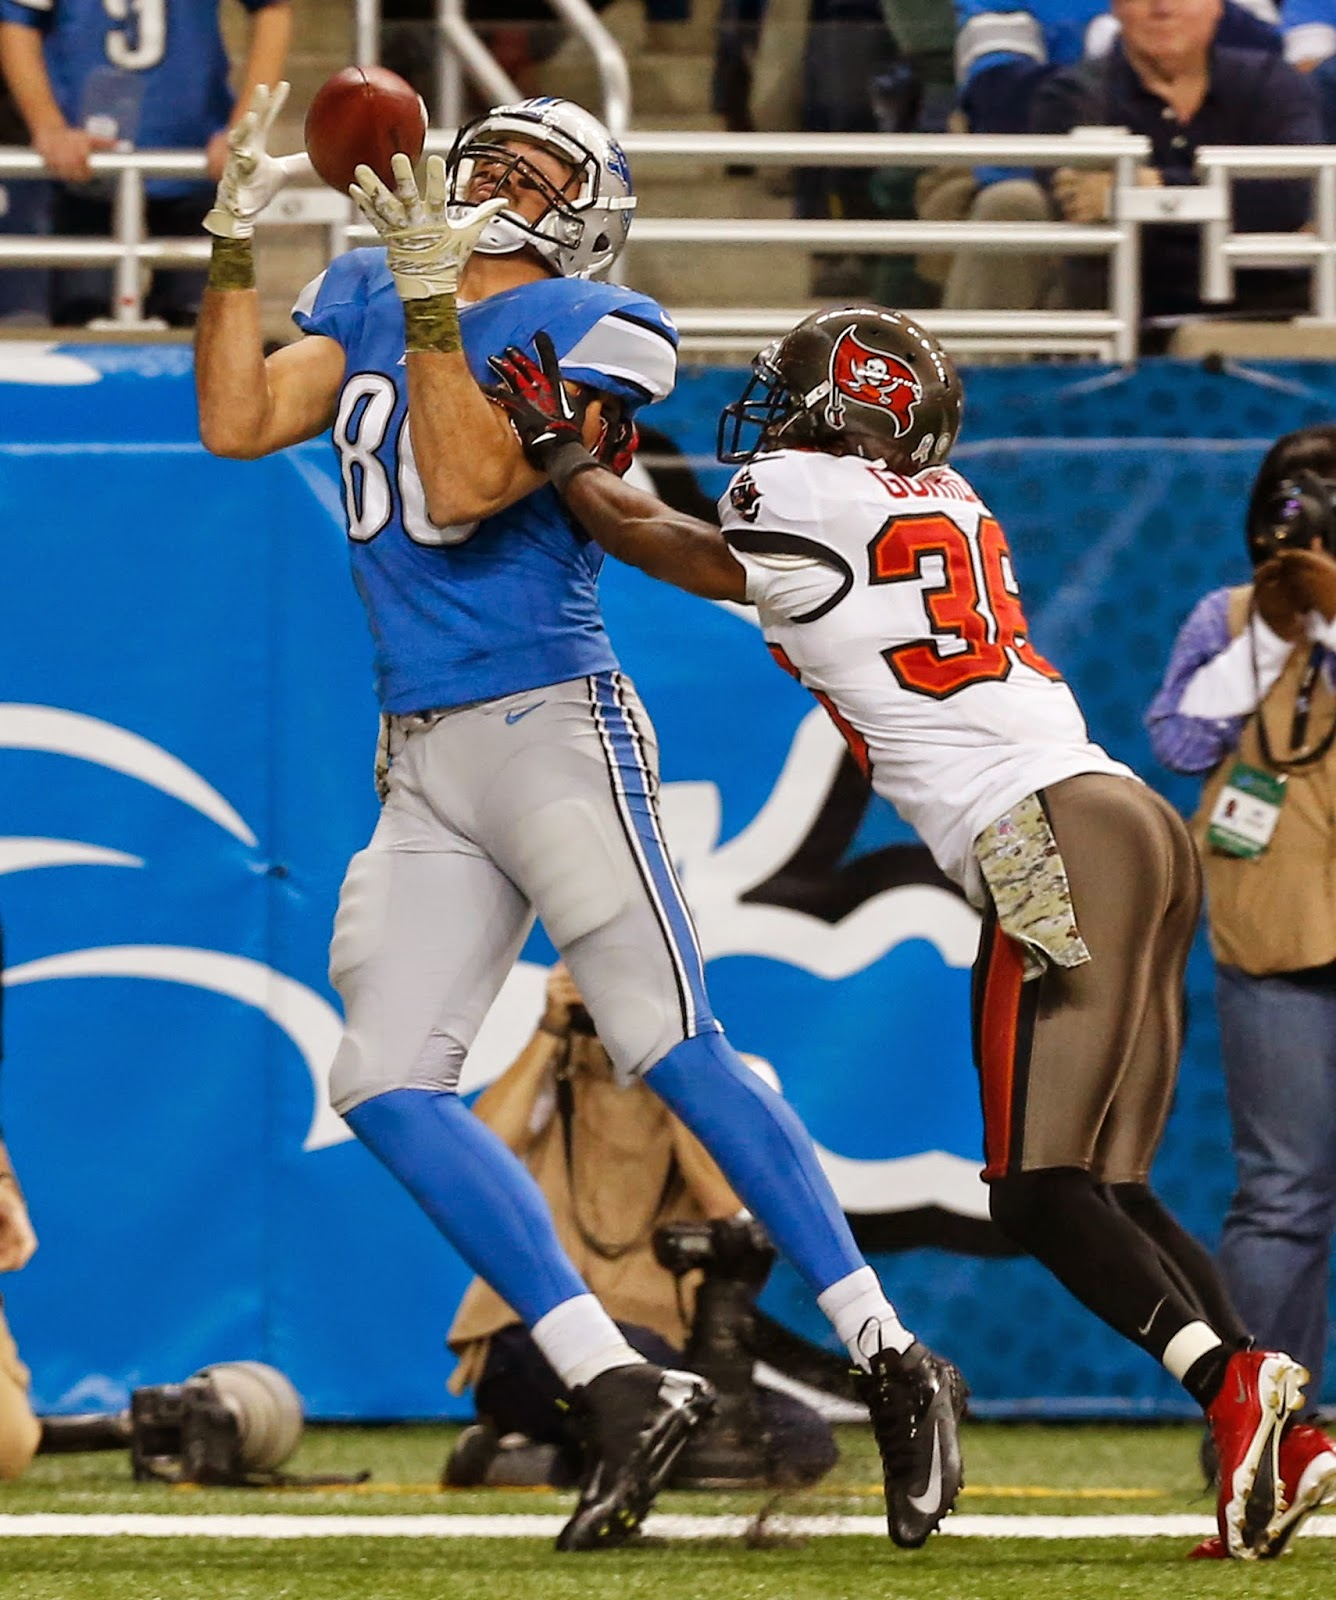 Detroit Lions — Three reasons Joe Fauria will still play role in offense